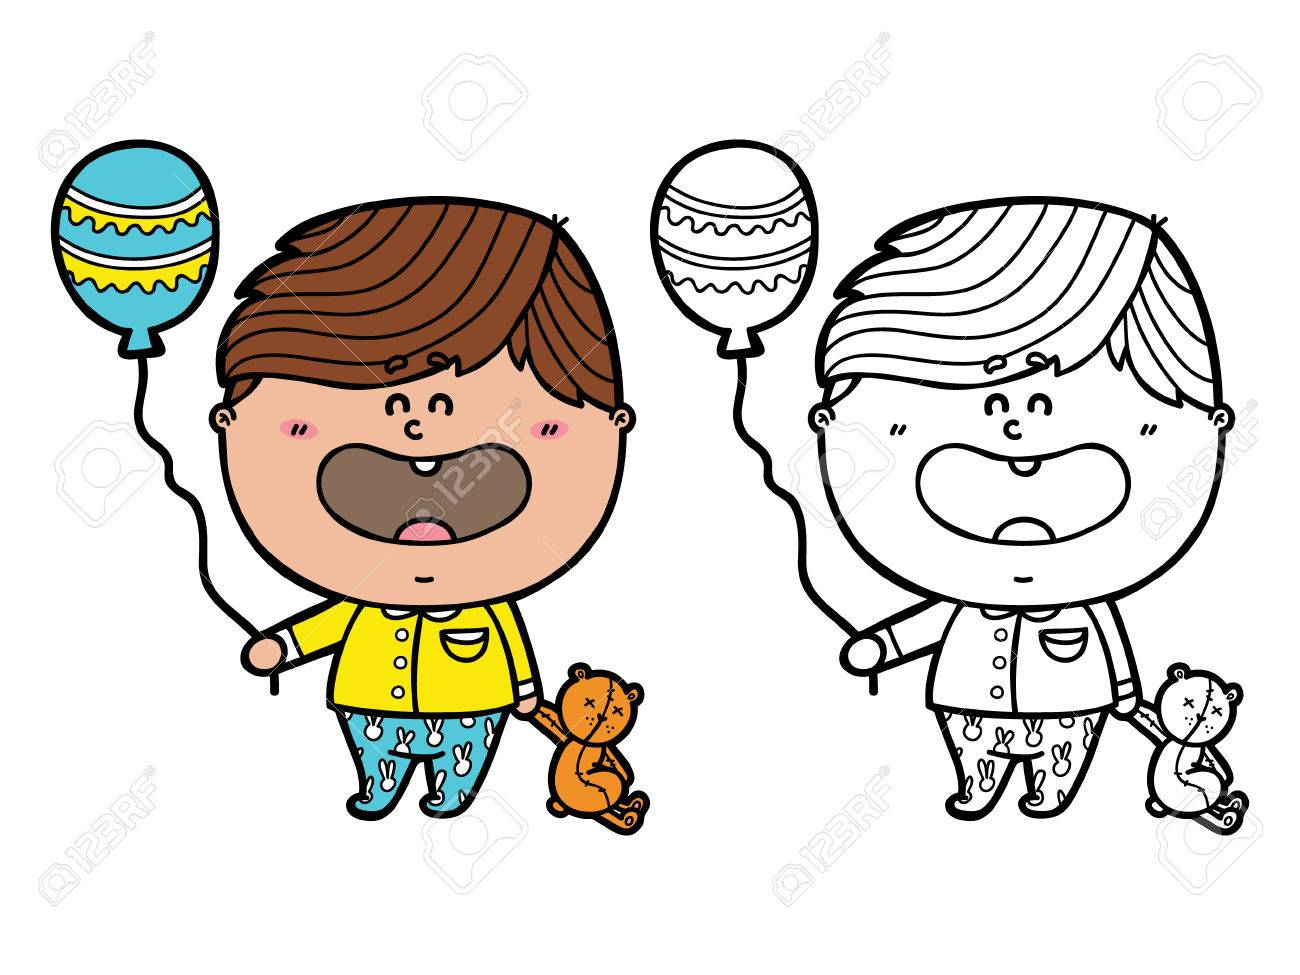 Funny Boy Vector Illustration Coloring Page Of Happy Cartoon